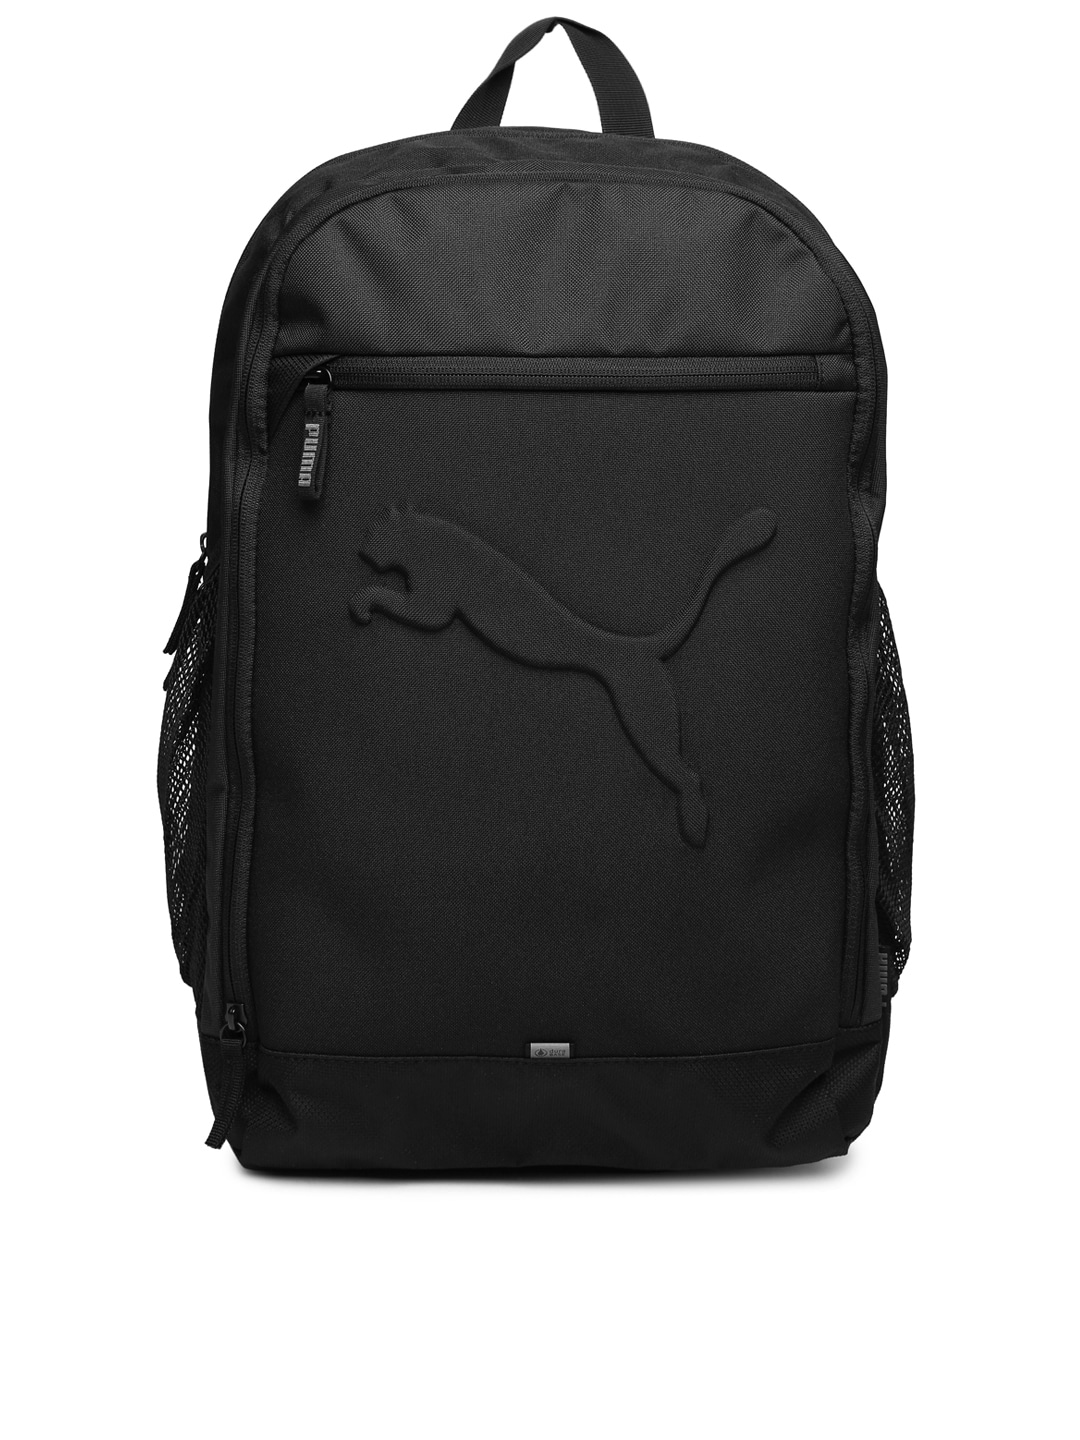 Puma 7358101 Unisex Black Buzz Backpack - Best Price in India ... 221f7436b9df8